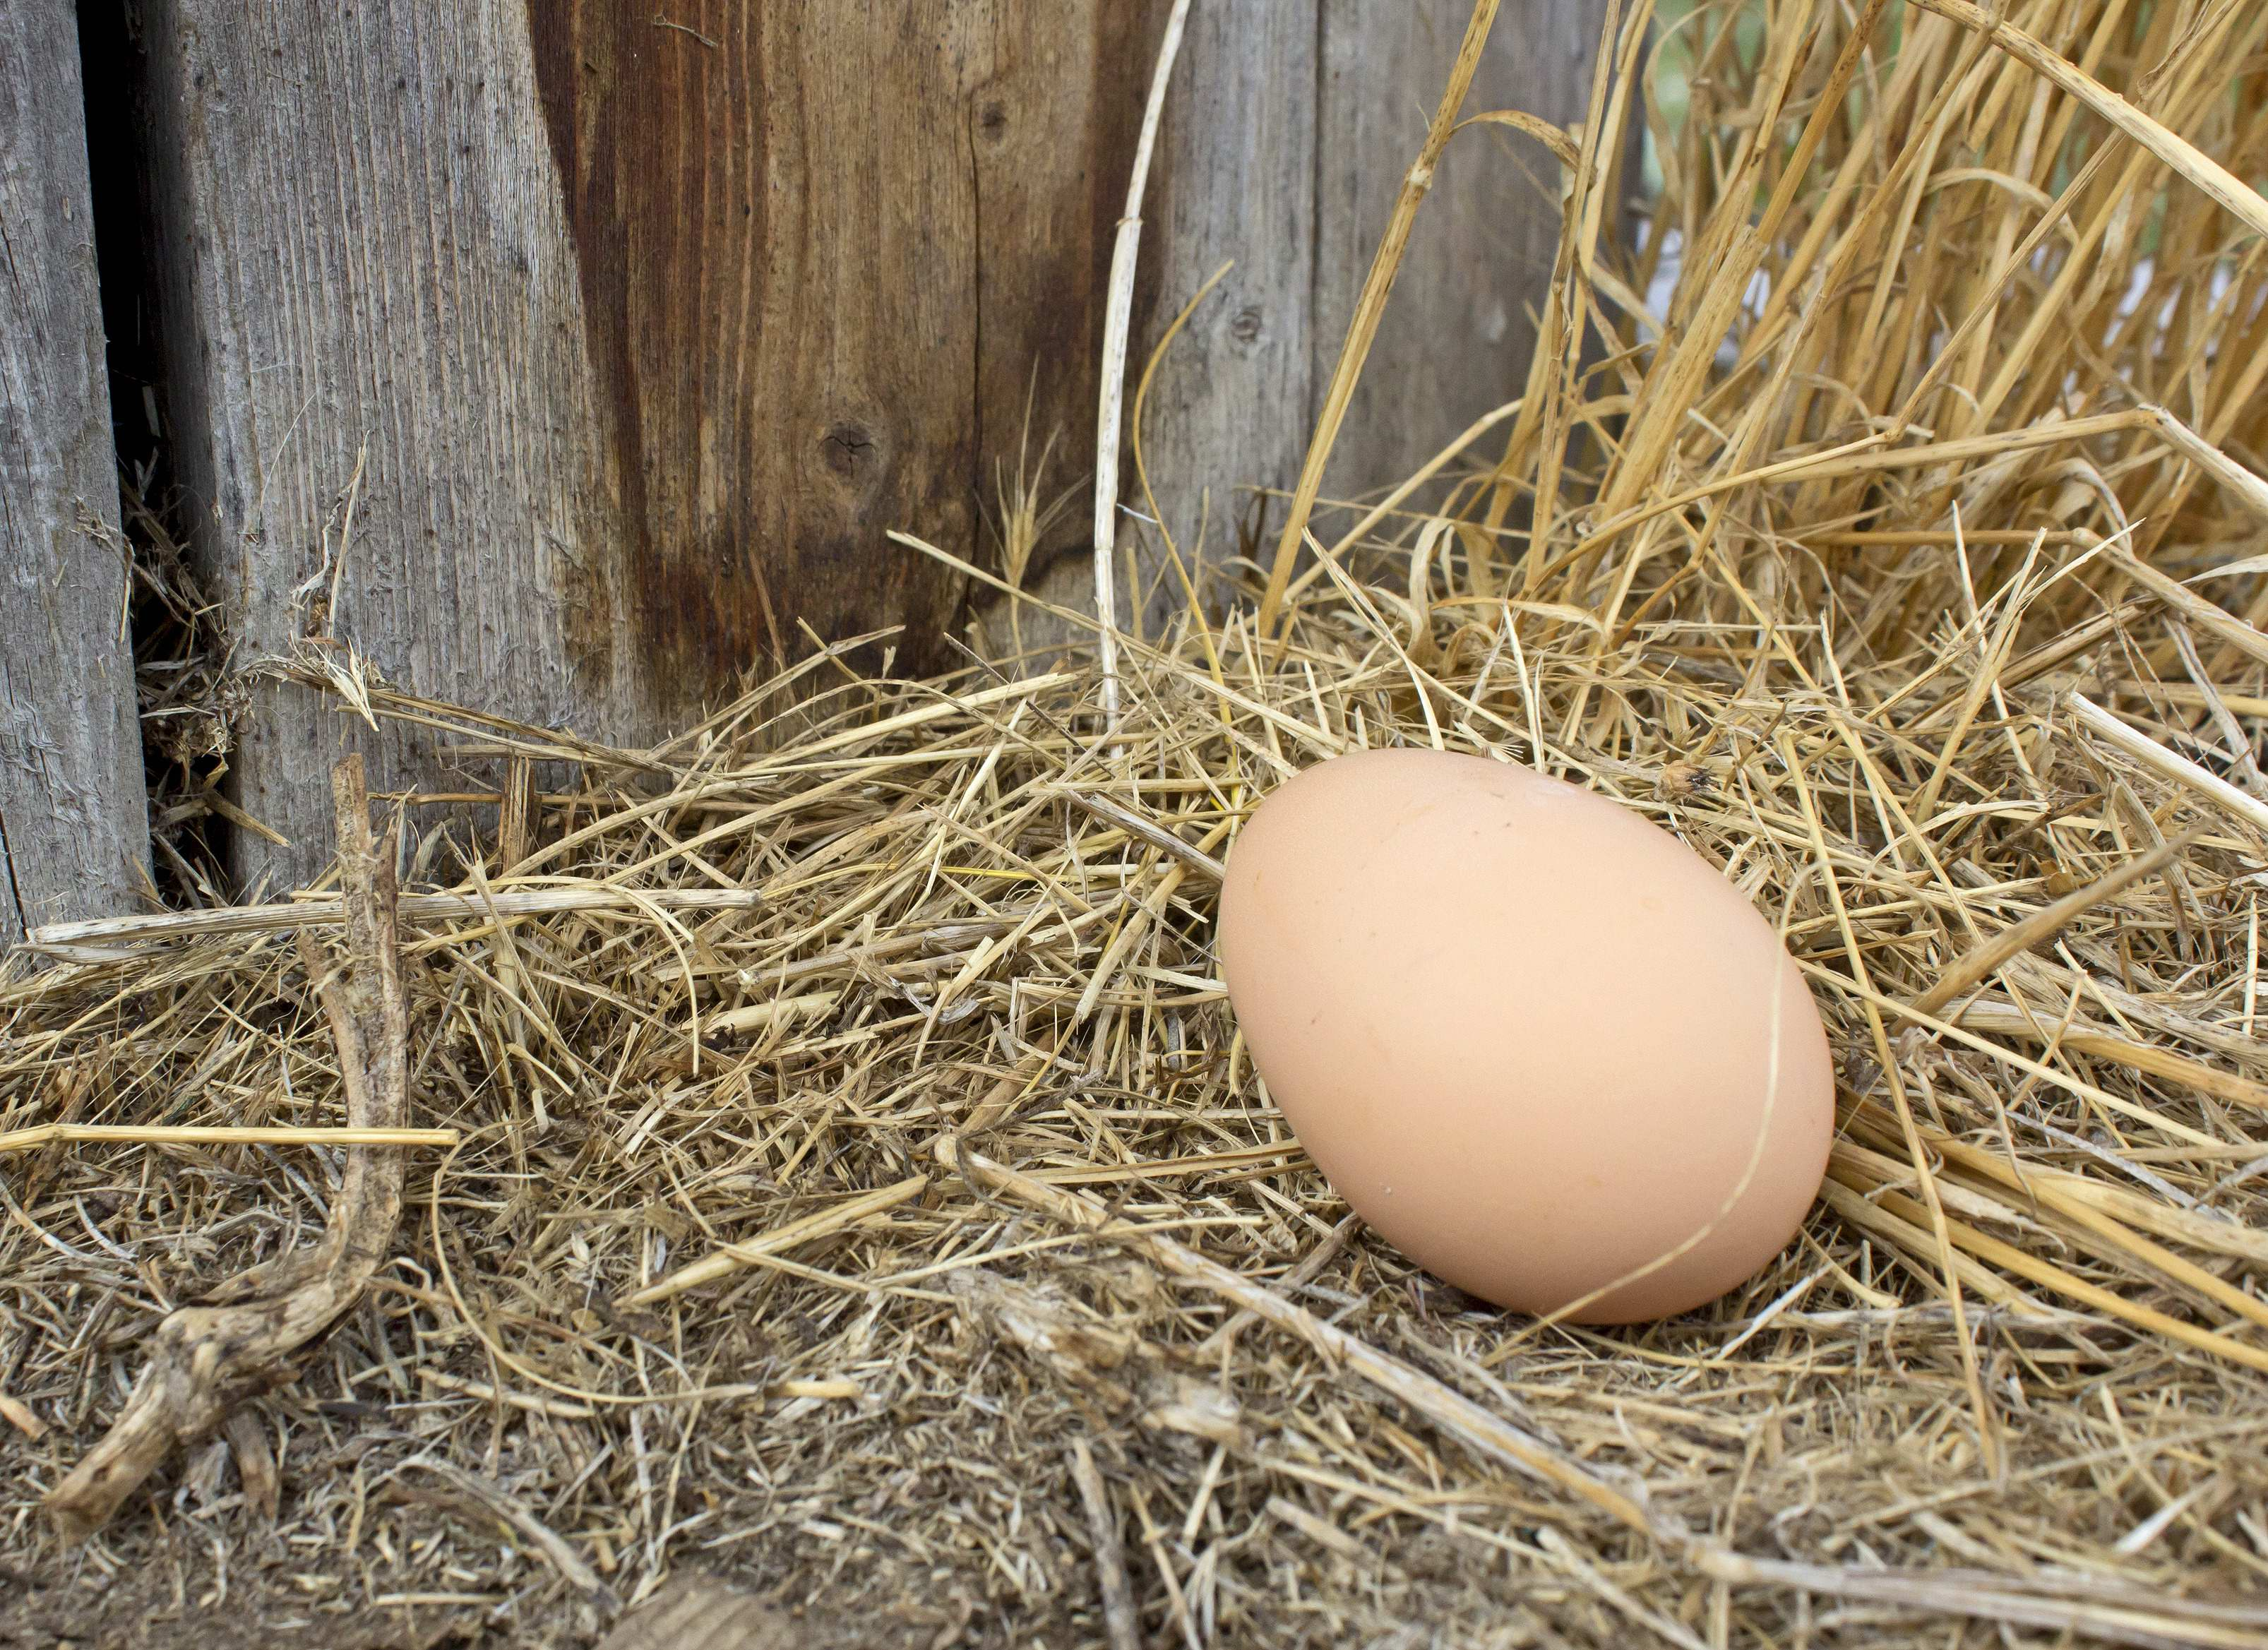 how many eggs do chickens lay per year